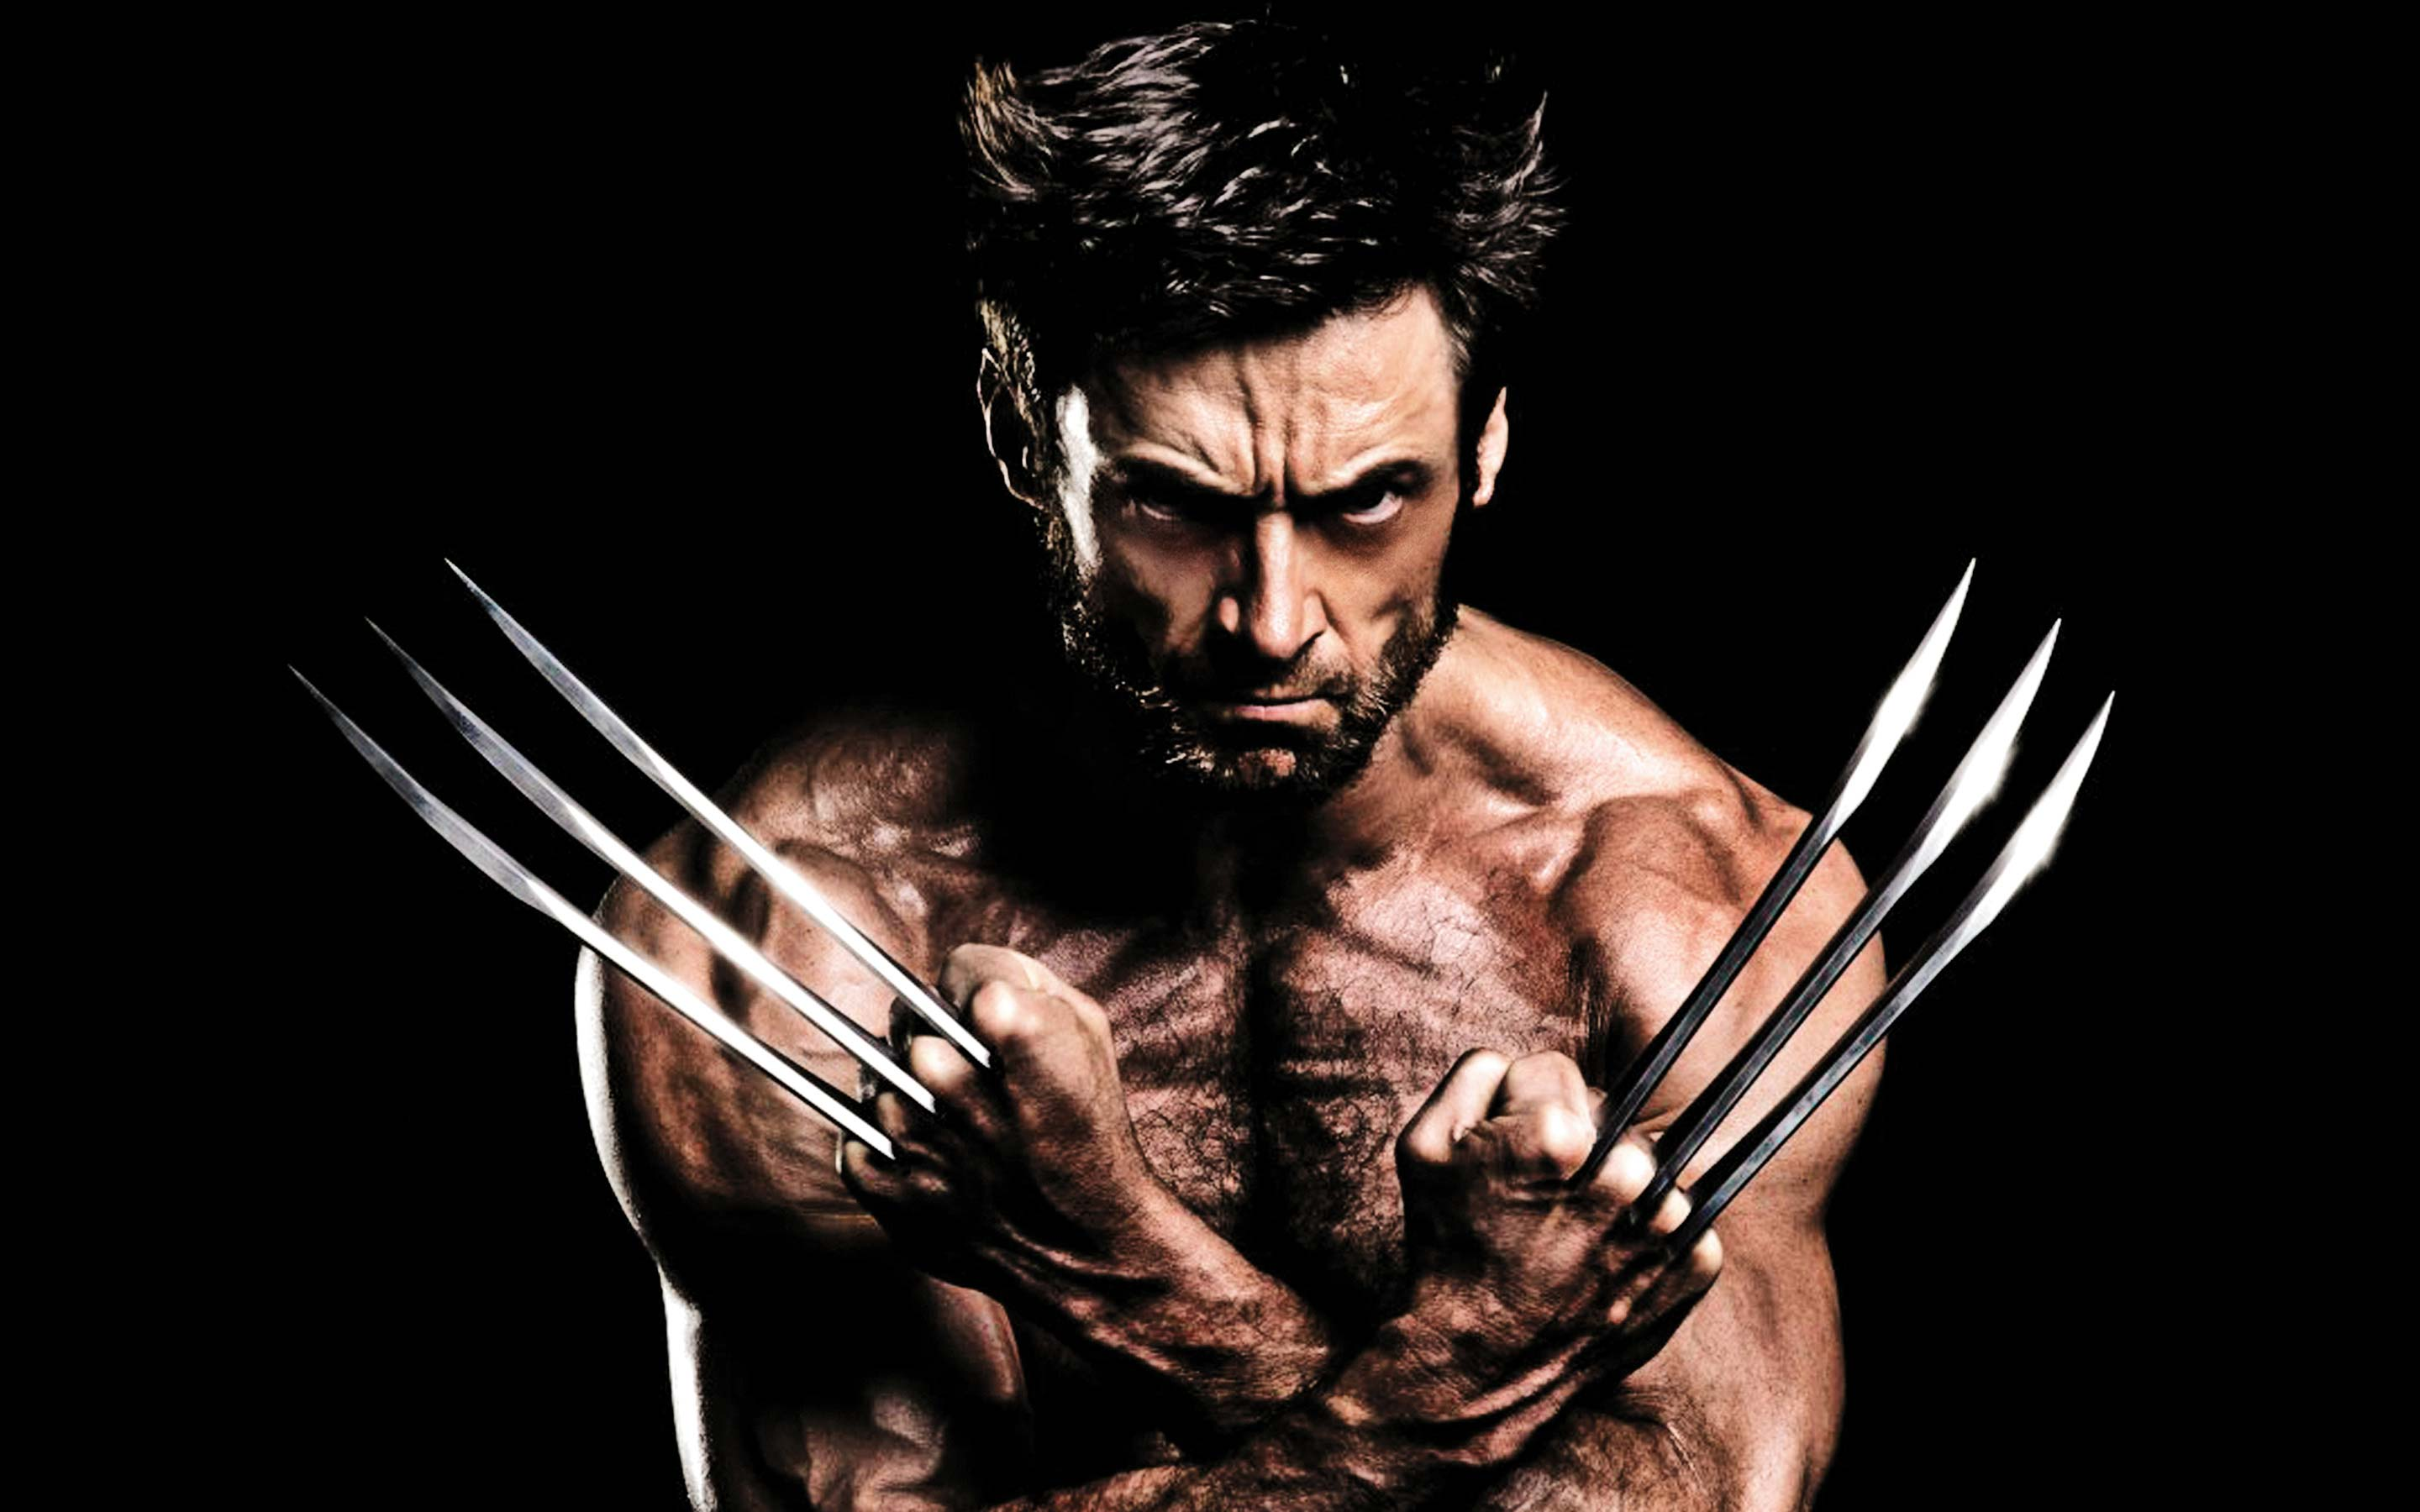 Wallpaper X Men Wolverine